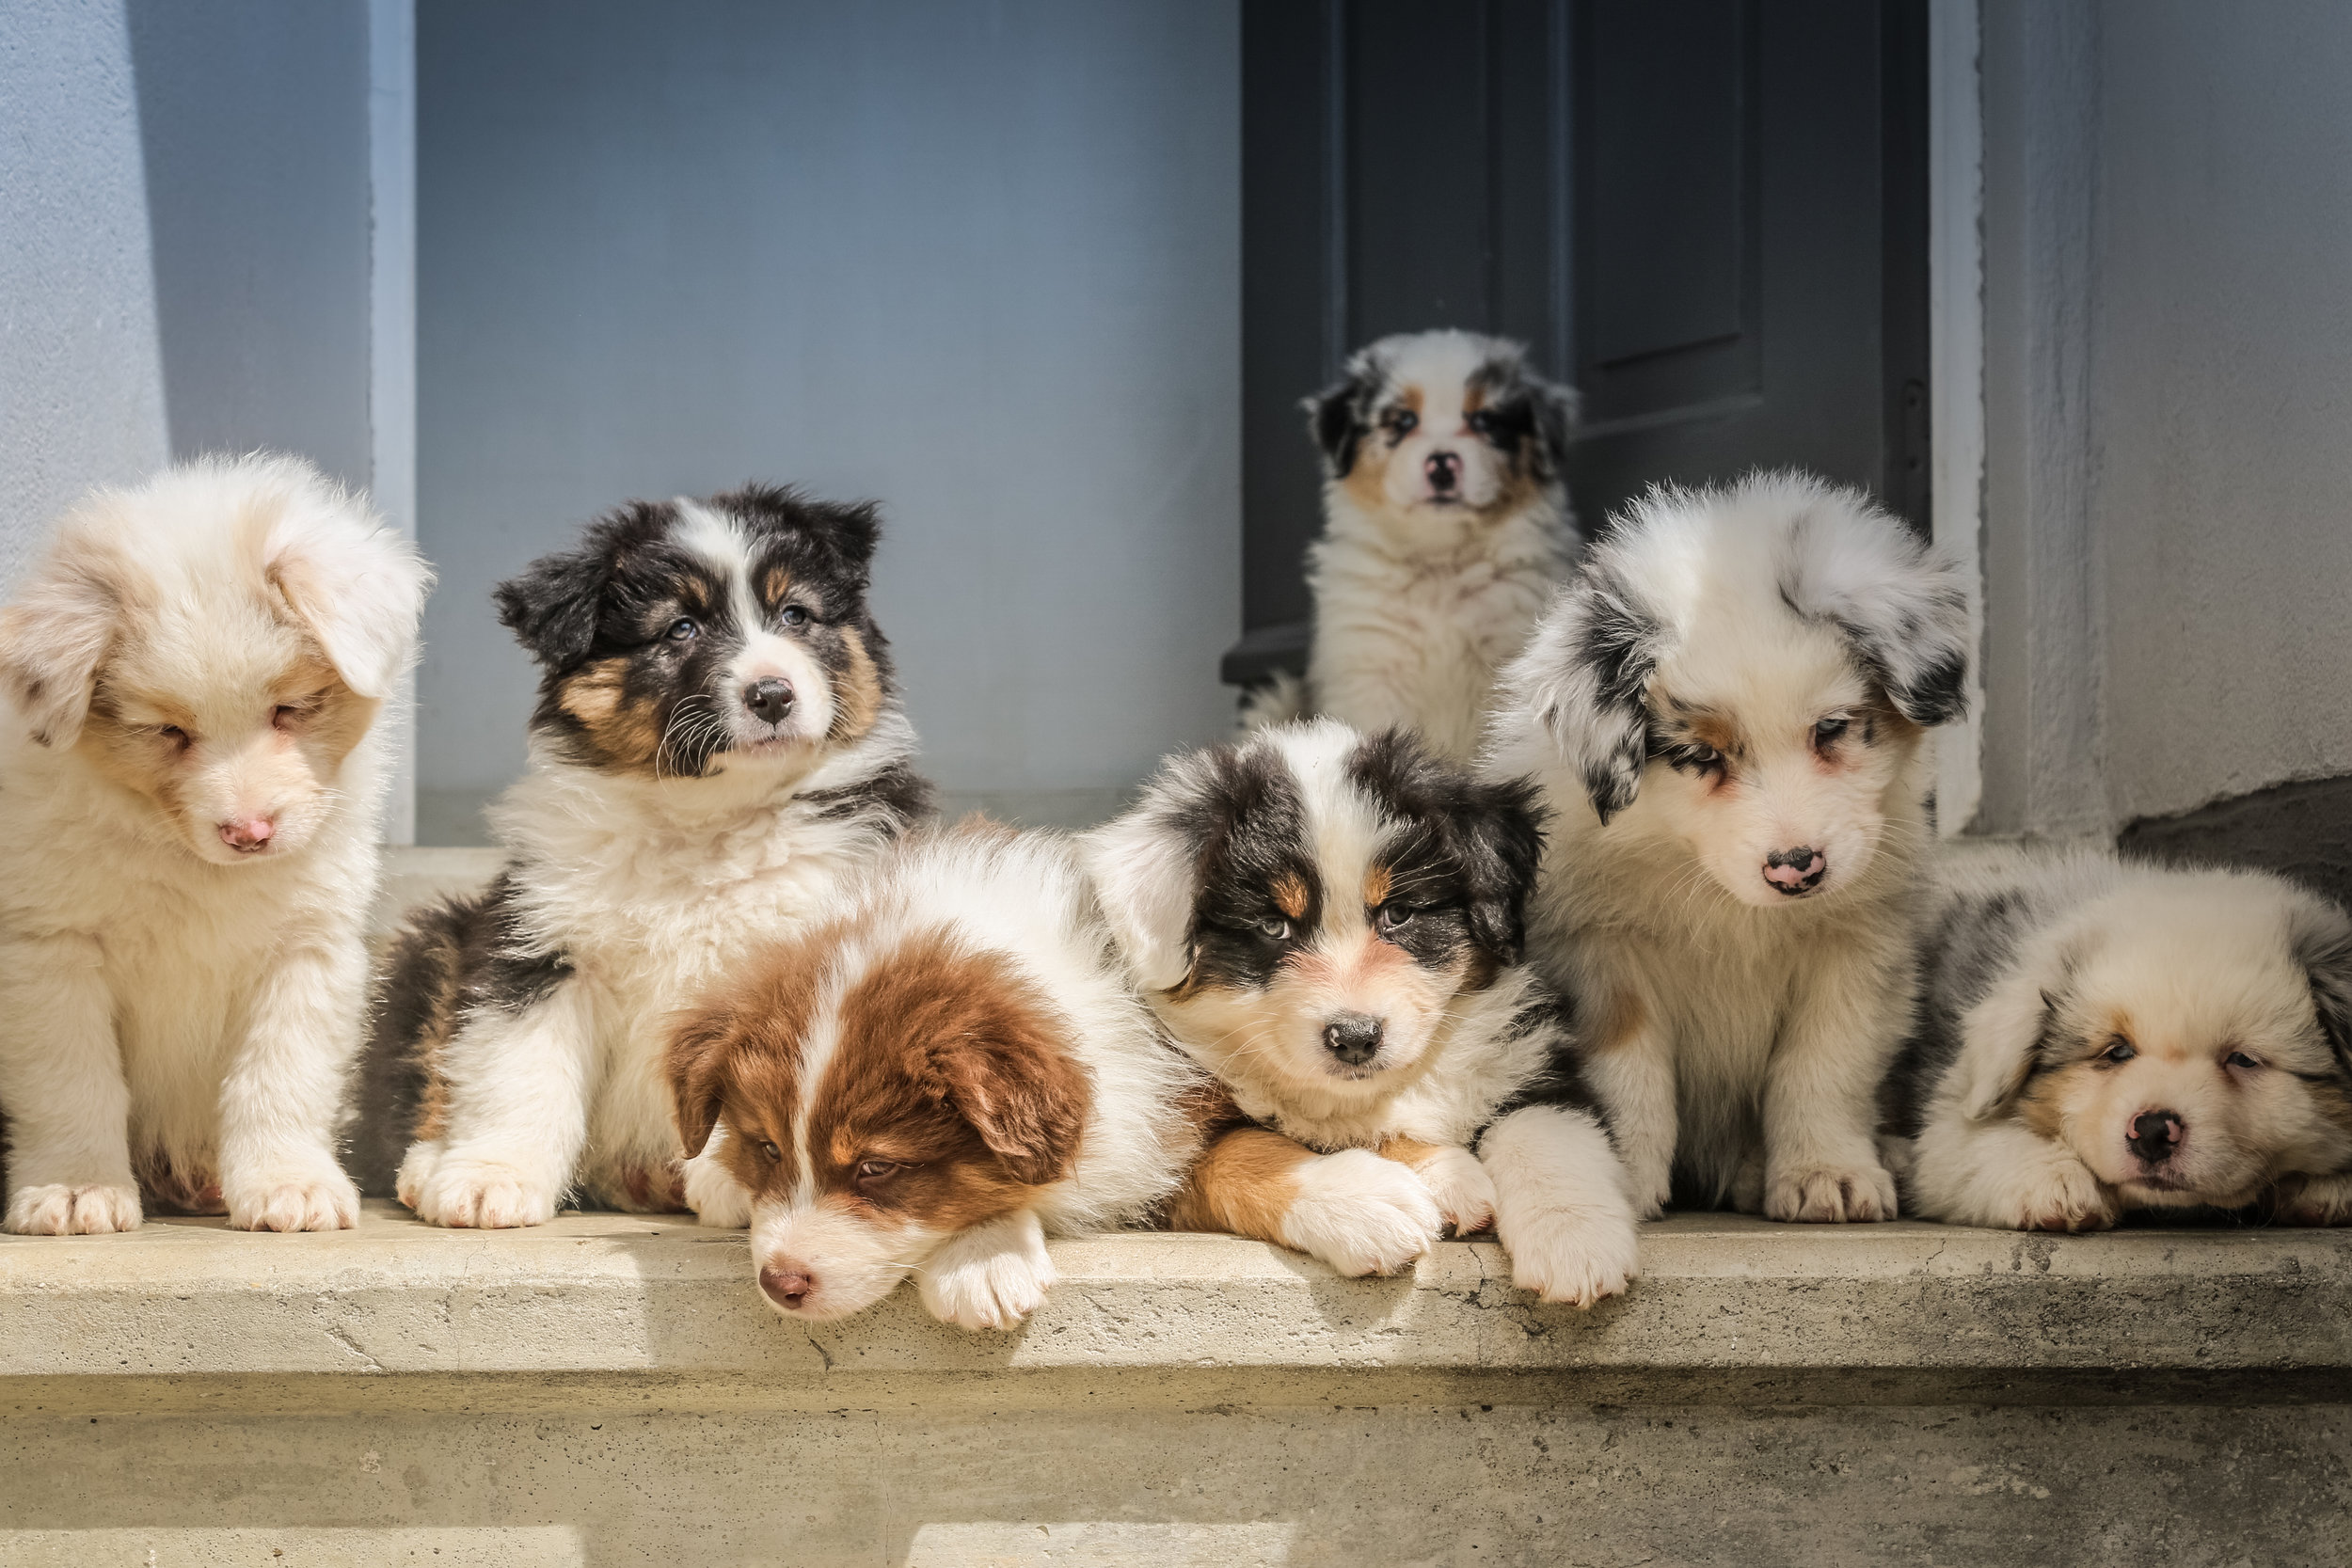 These puppies know what's what!